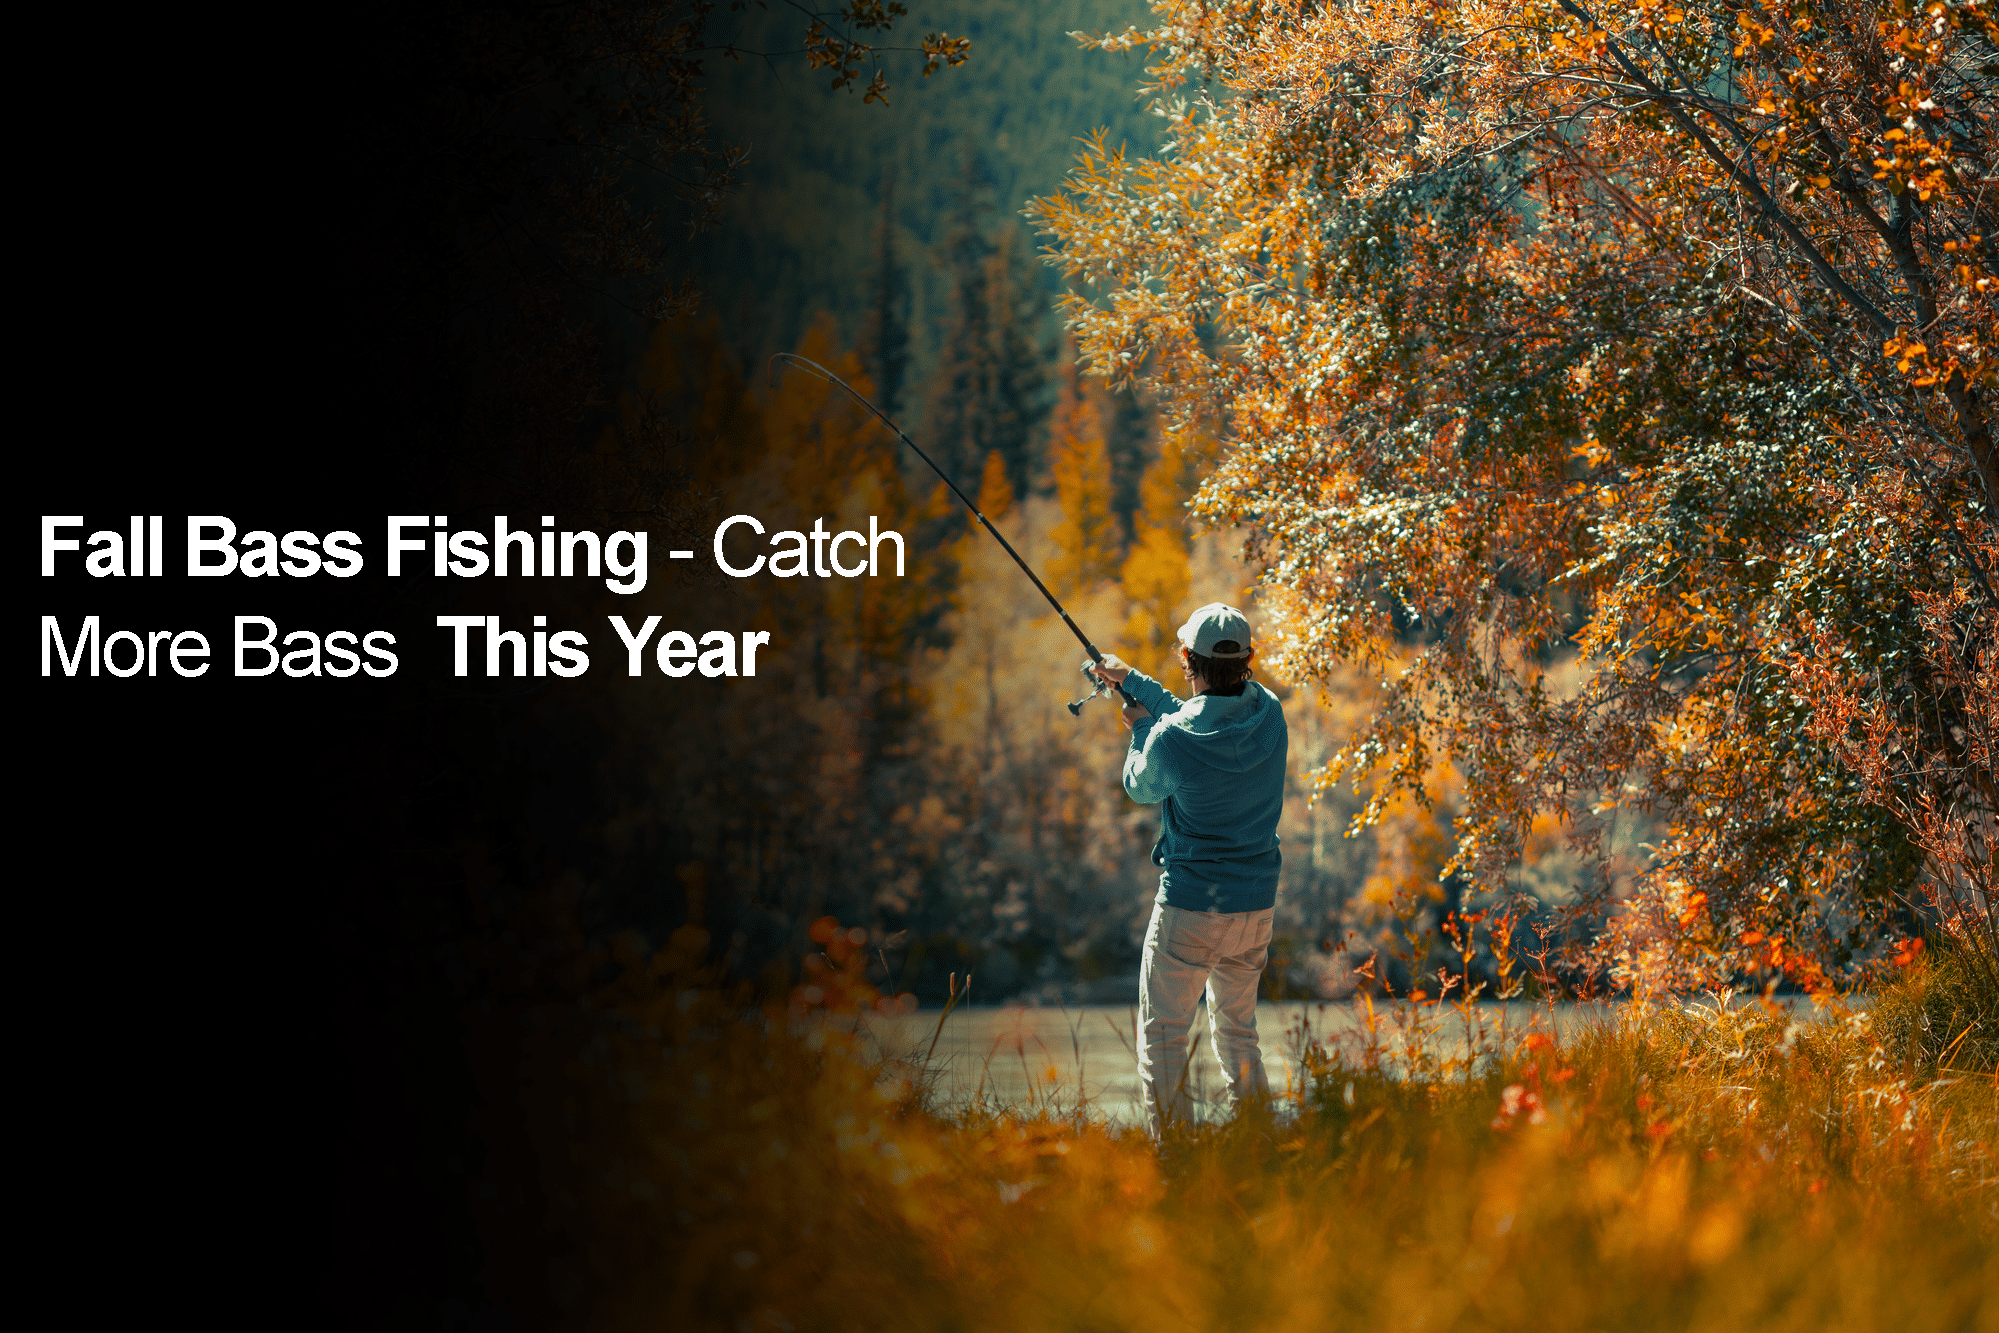 Amateur angler fishing on the autumn river